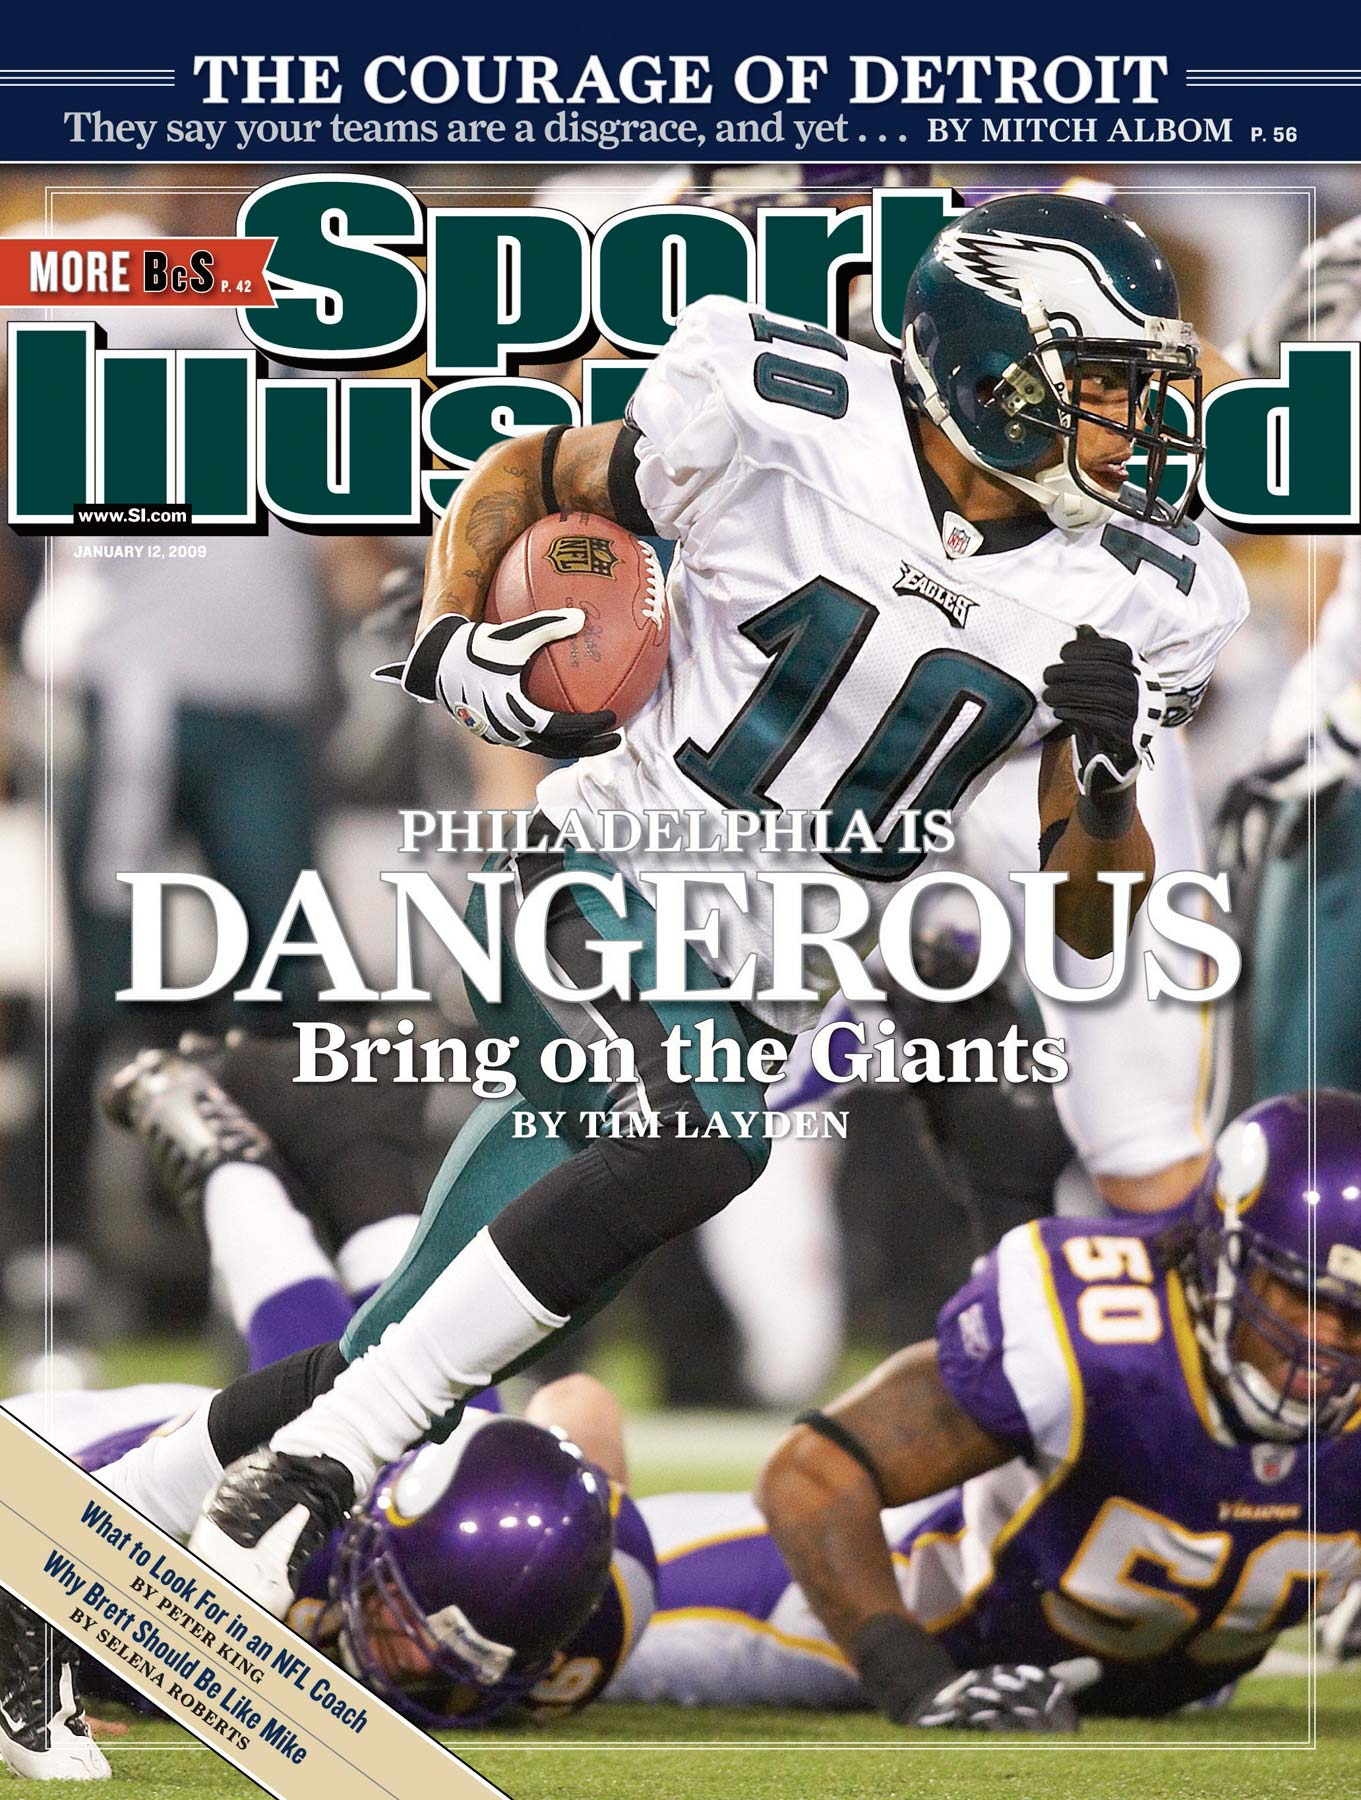 DeSean Jackson of the Philadelphia Eagles on the cover of Sports Illustrated.